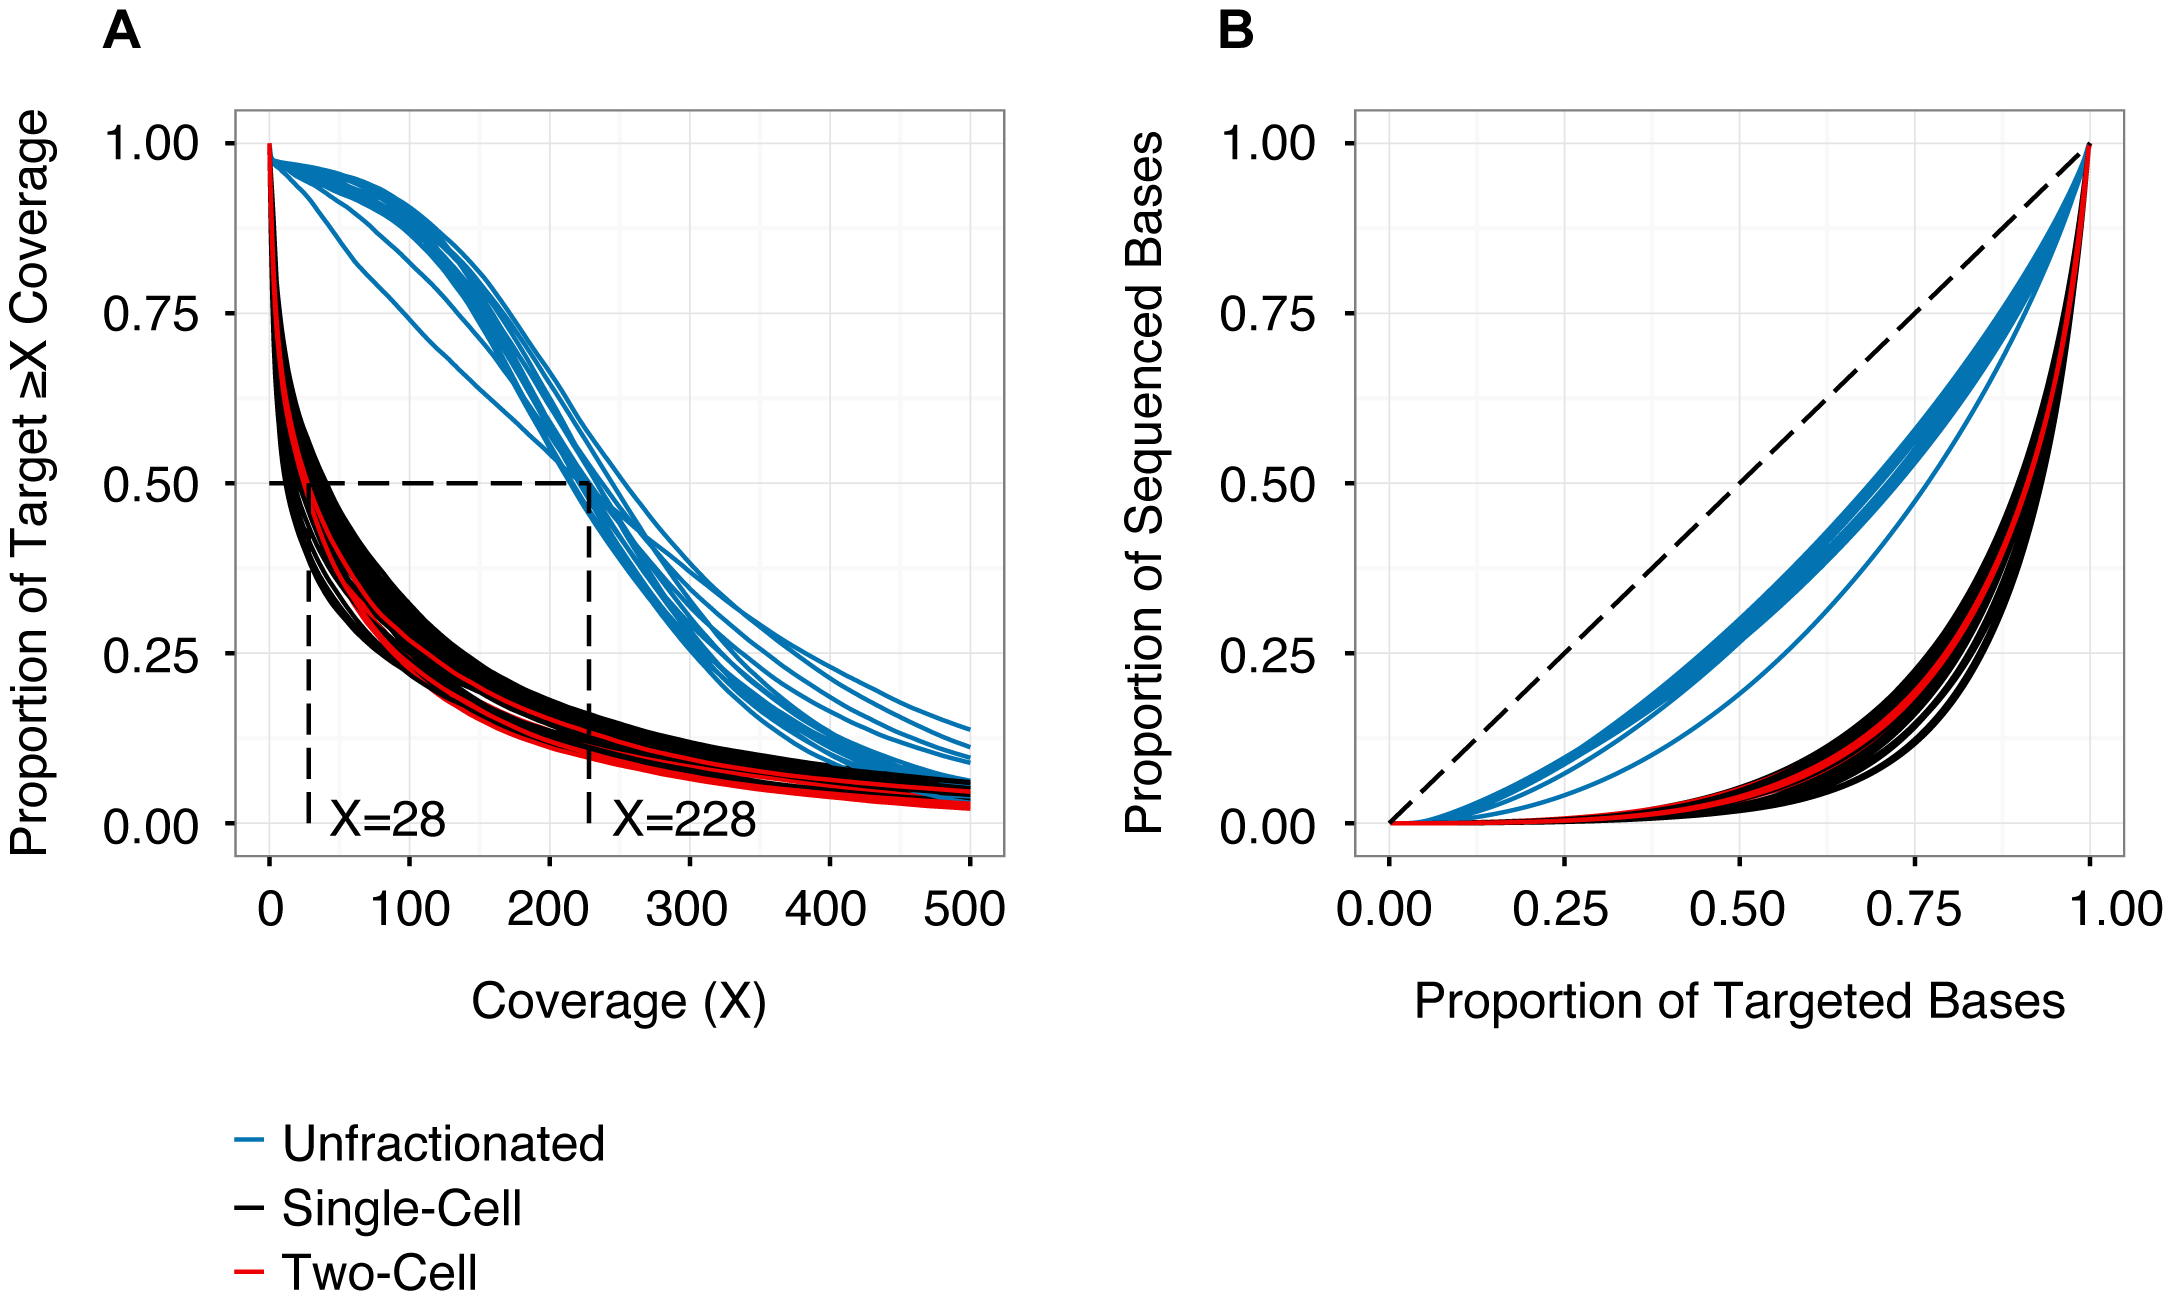 Depth and distribution of coverage for each sequencing library (n = 56).